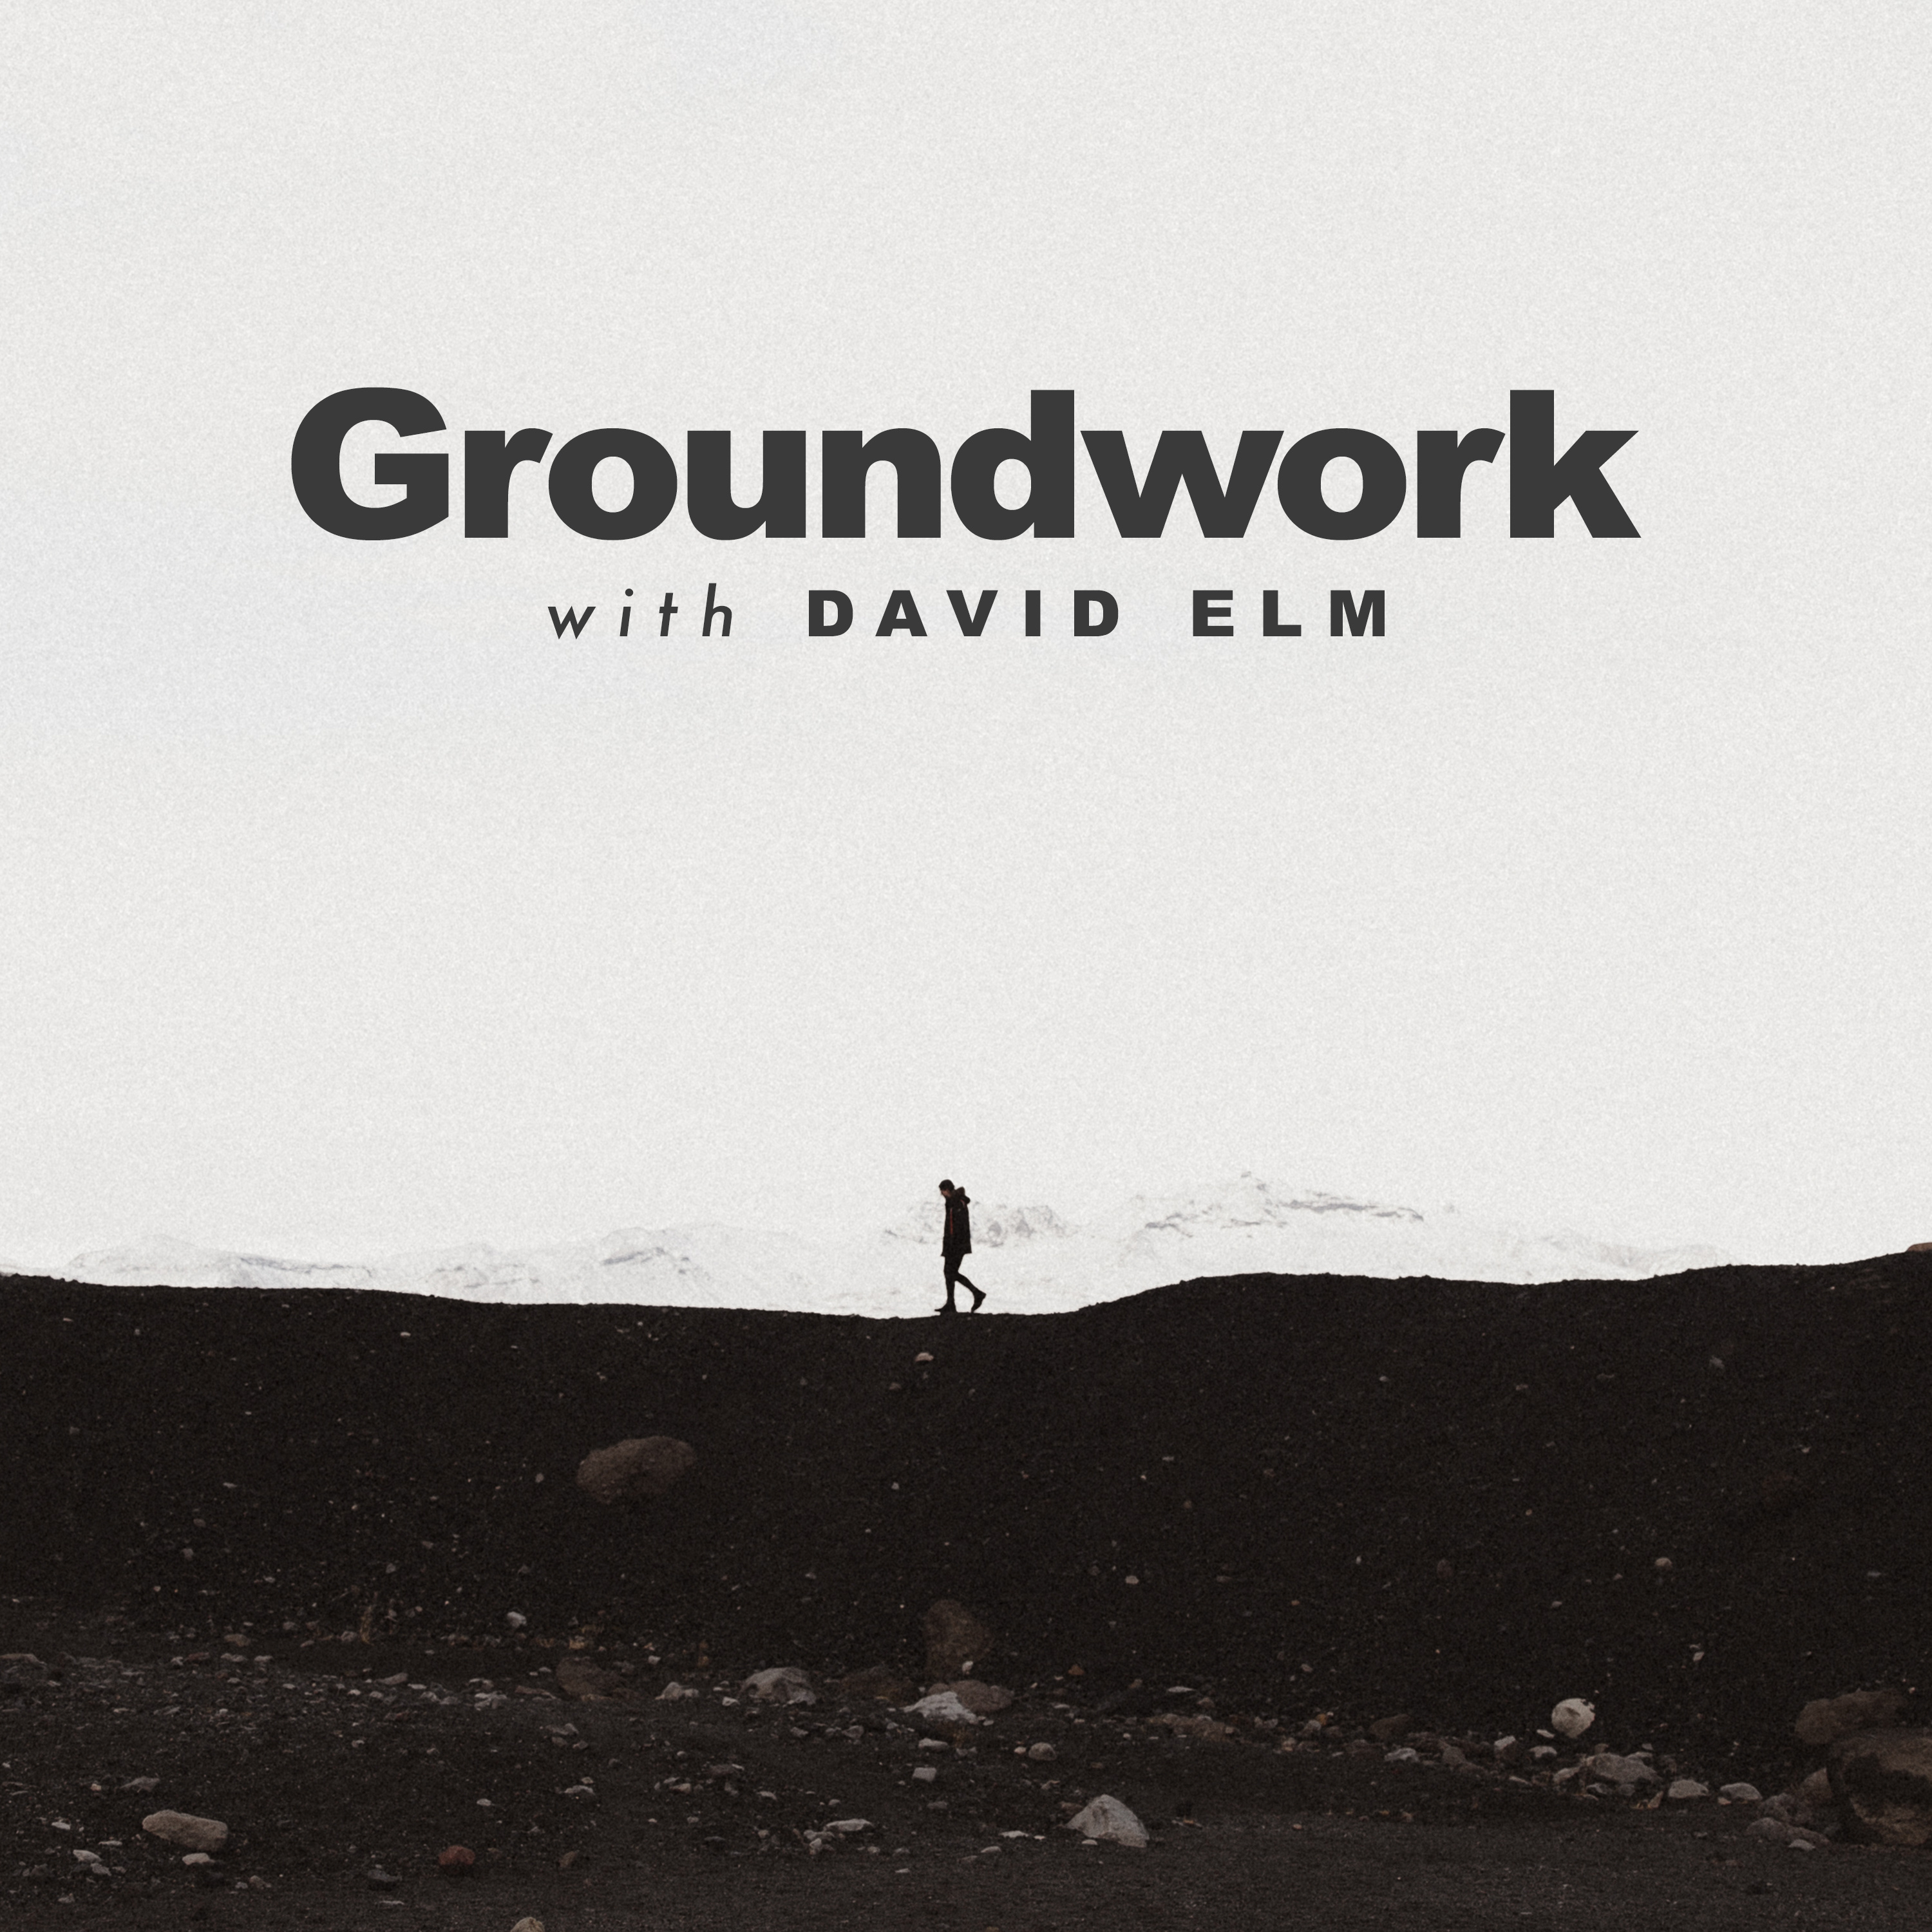 Introducing Me - First Episode of Groundwork